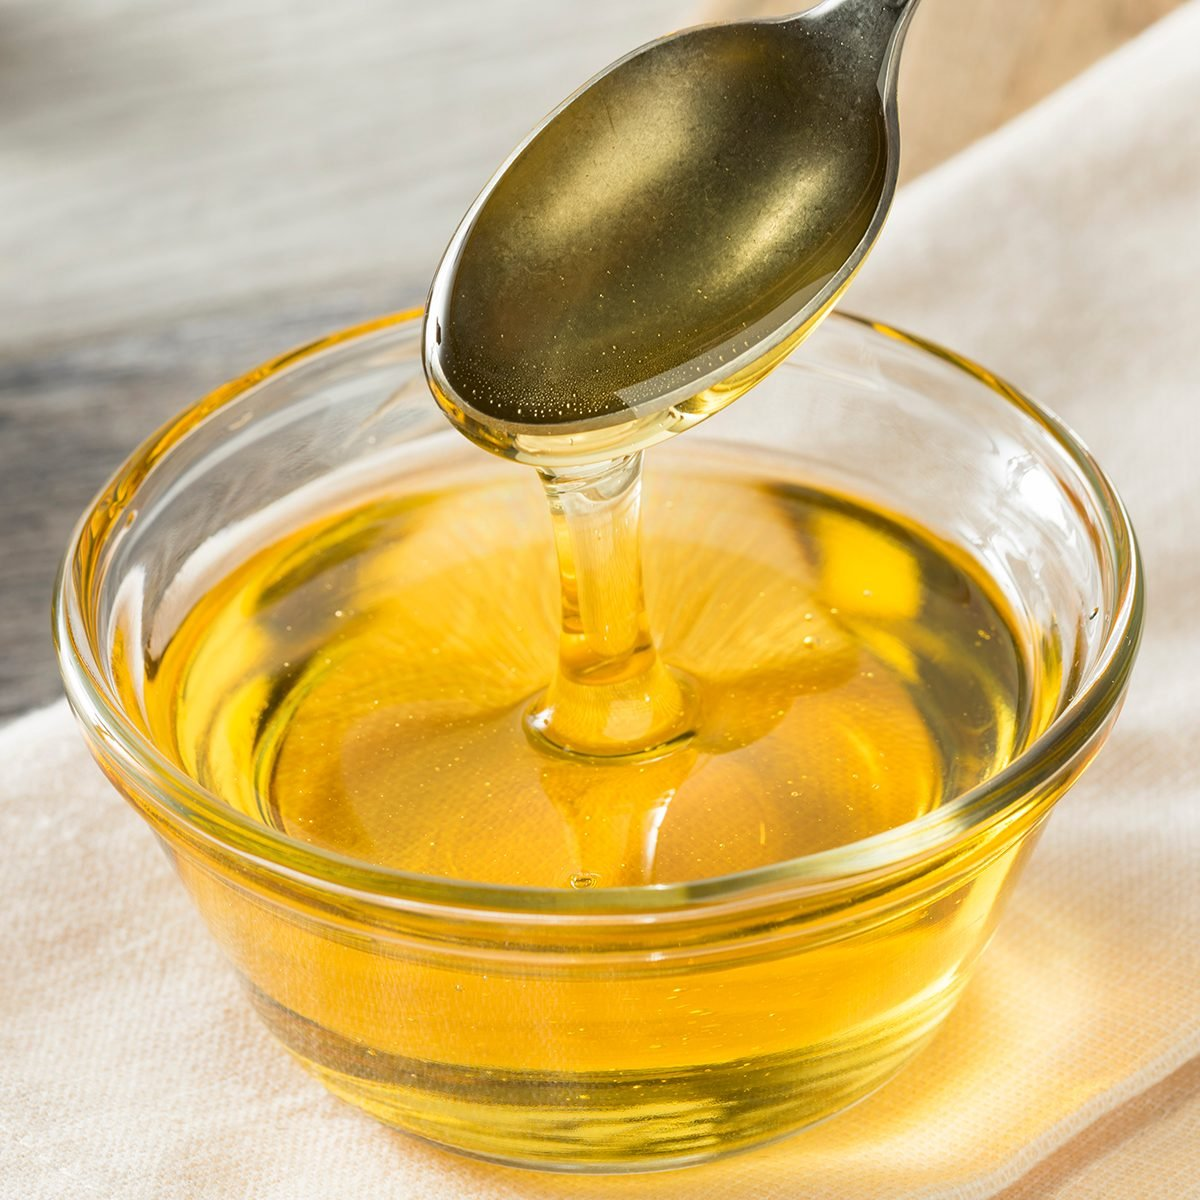 Raw Organic Sweet Light Agave Syrup in a Bowl